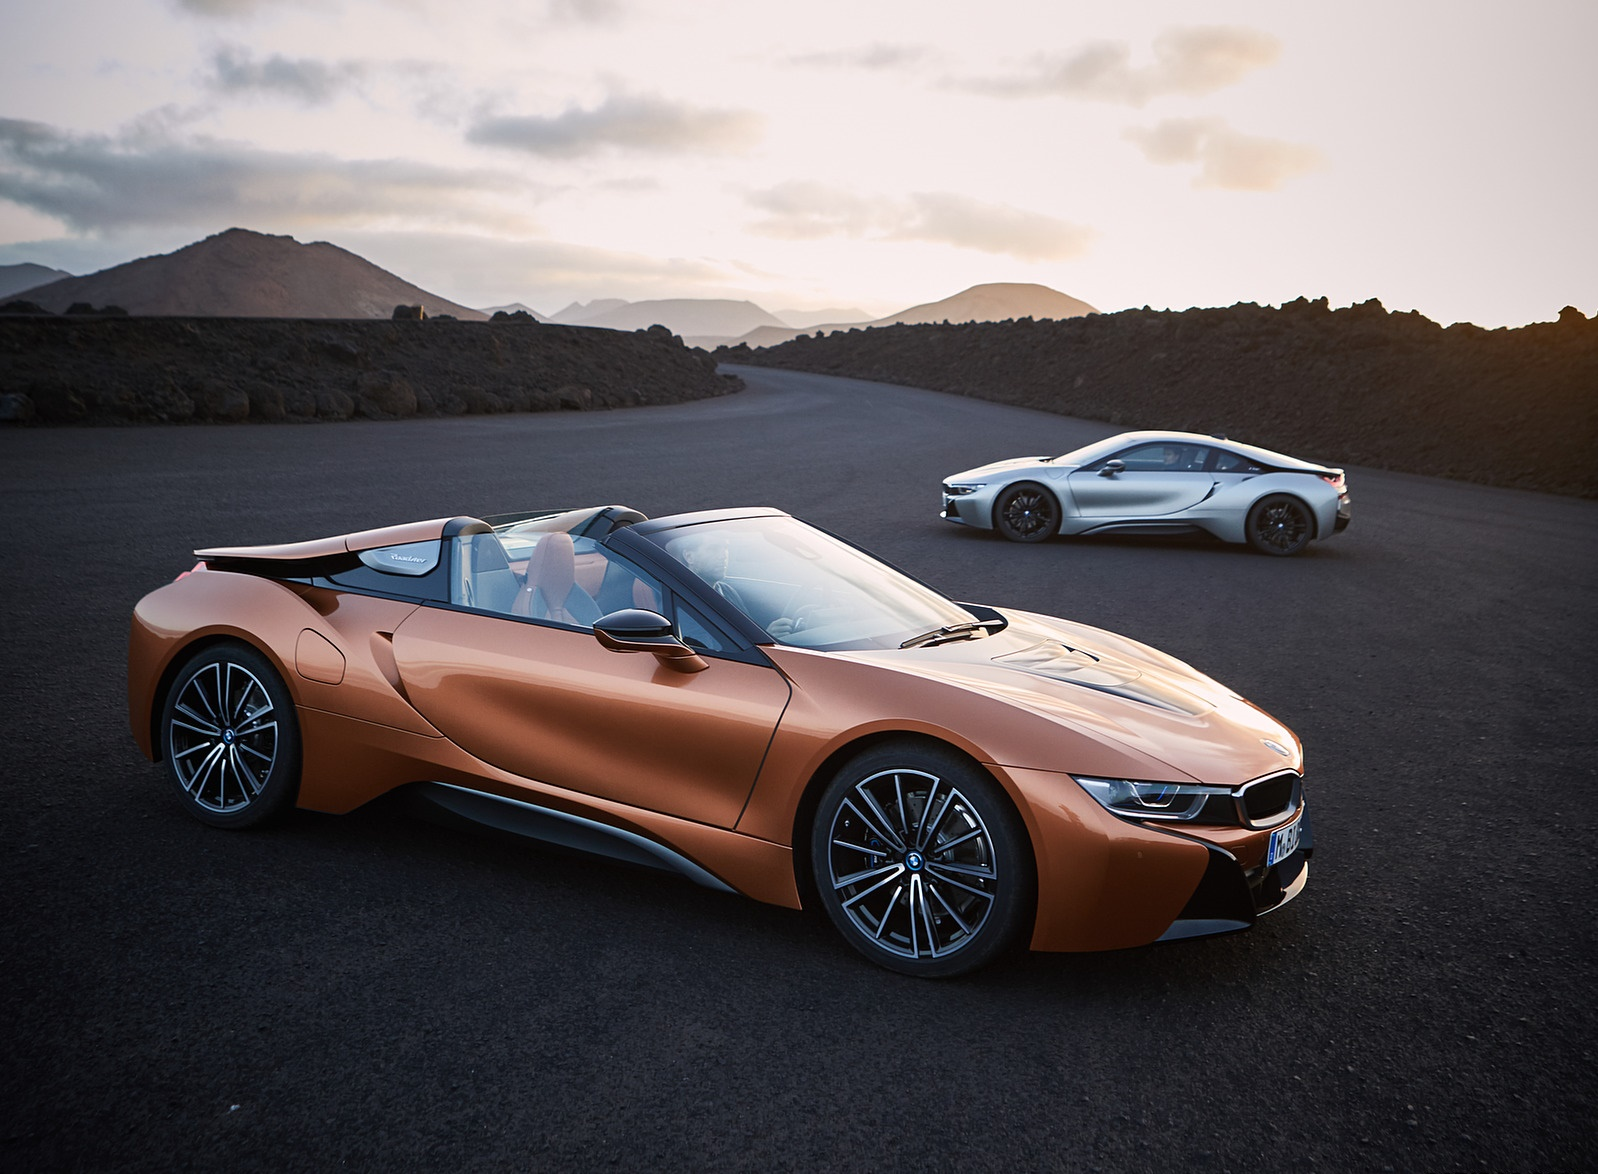 2019 BMW i8 Roadster and Coupe Wallpaper (15)